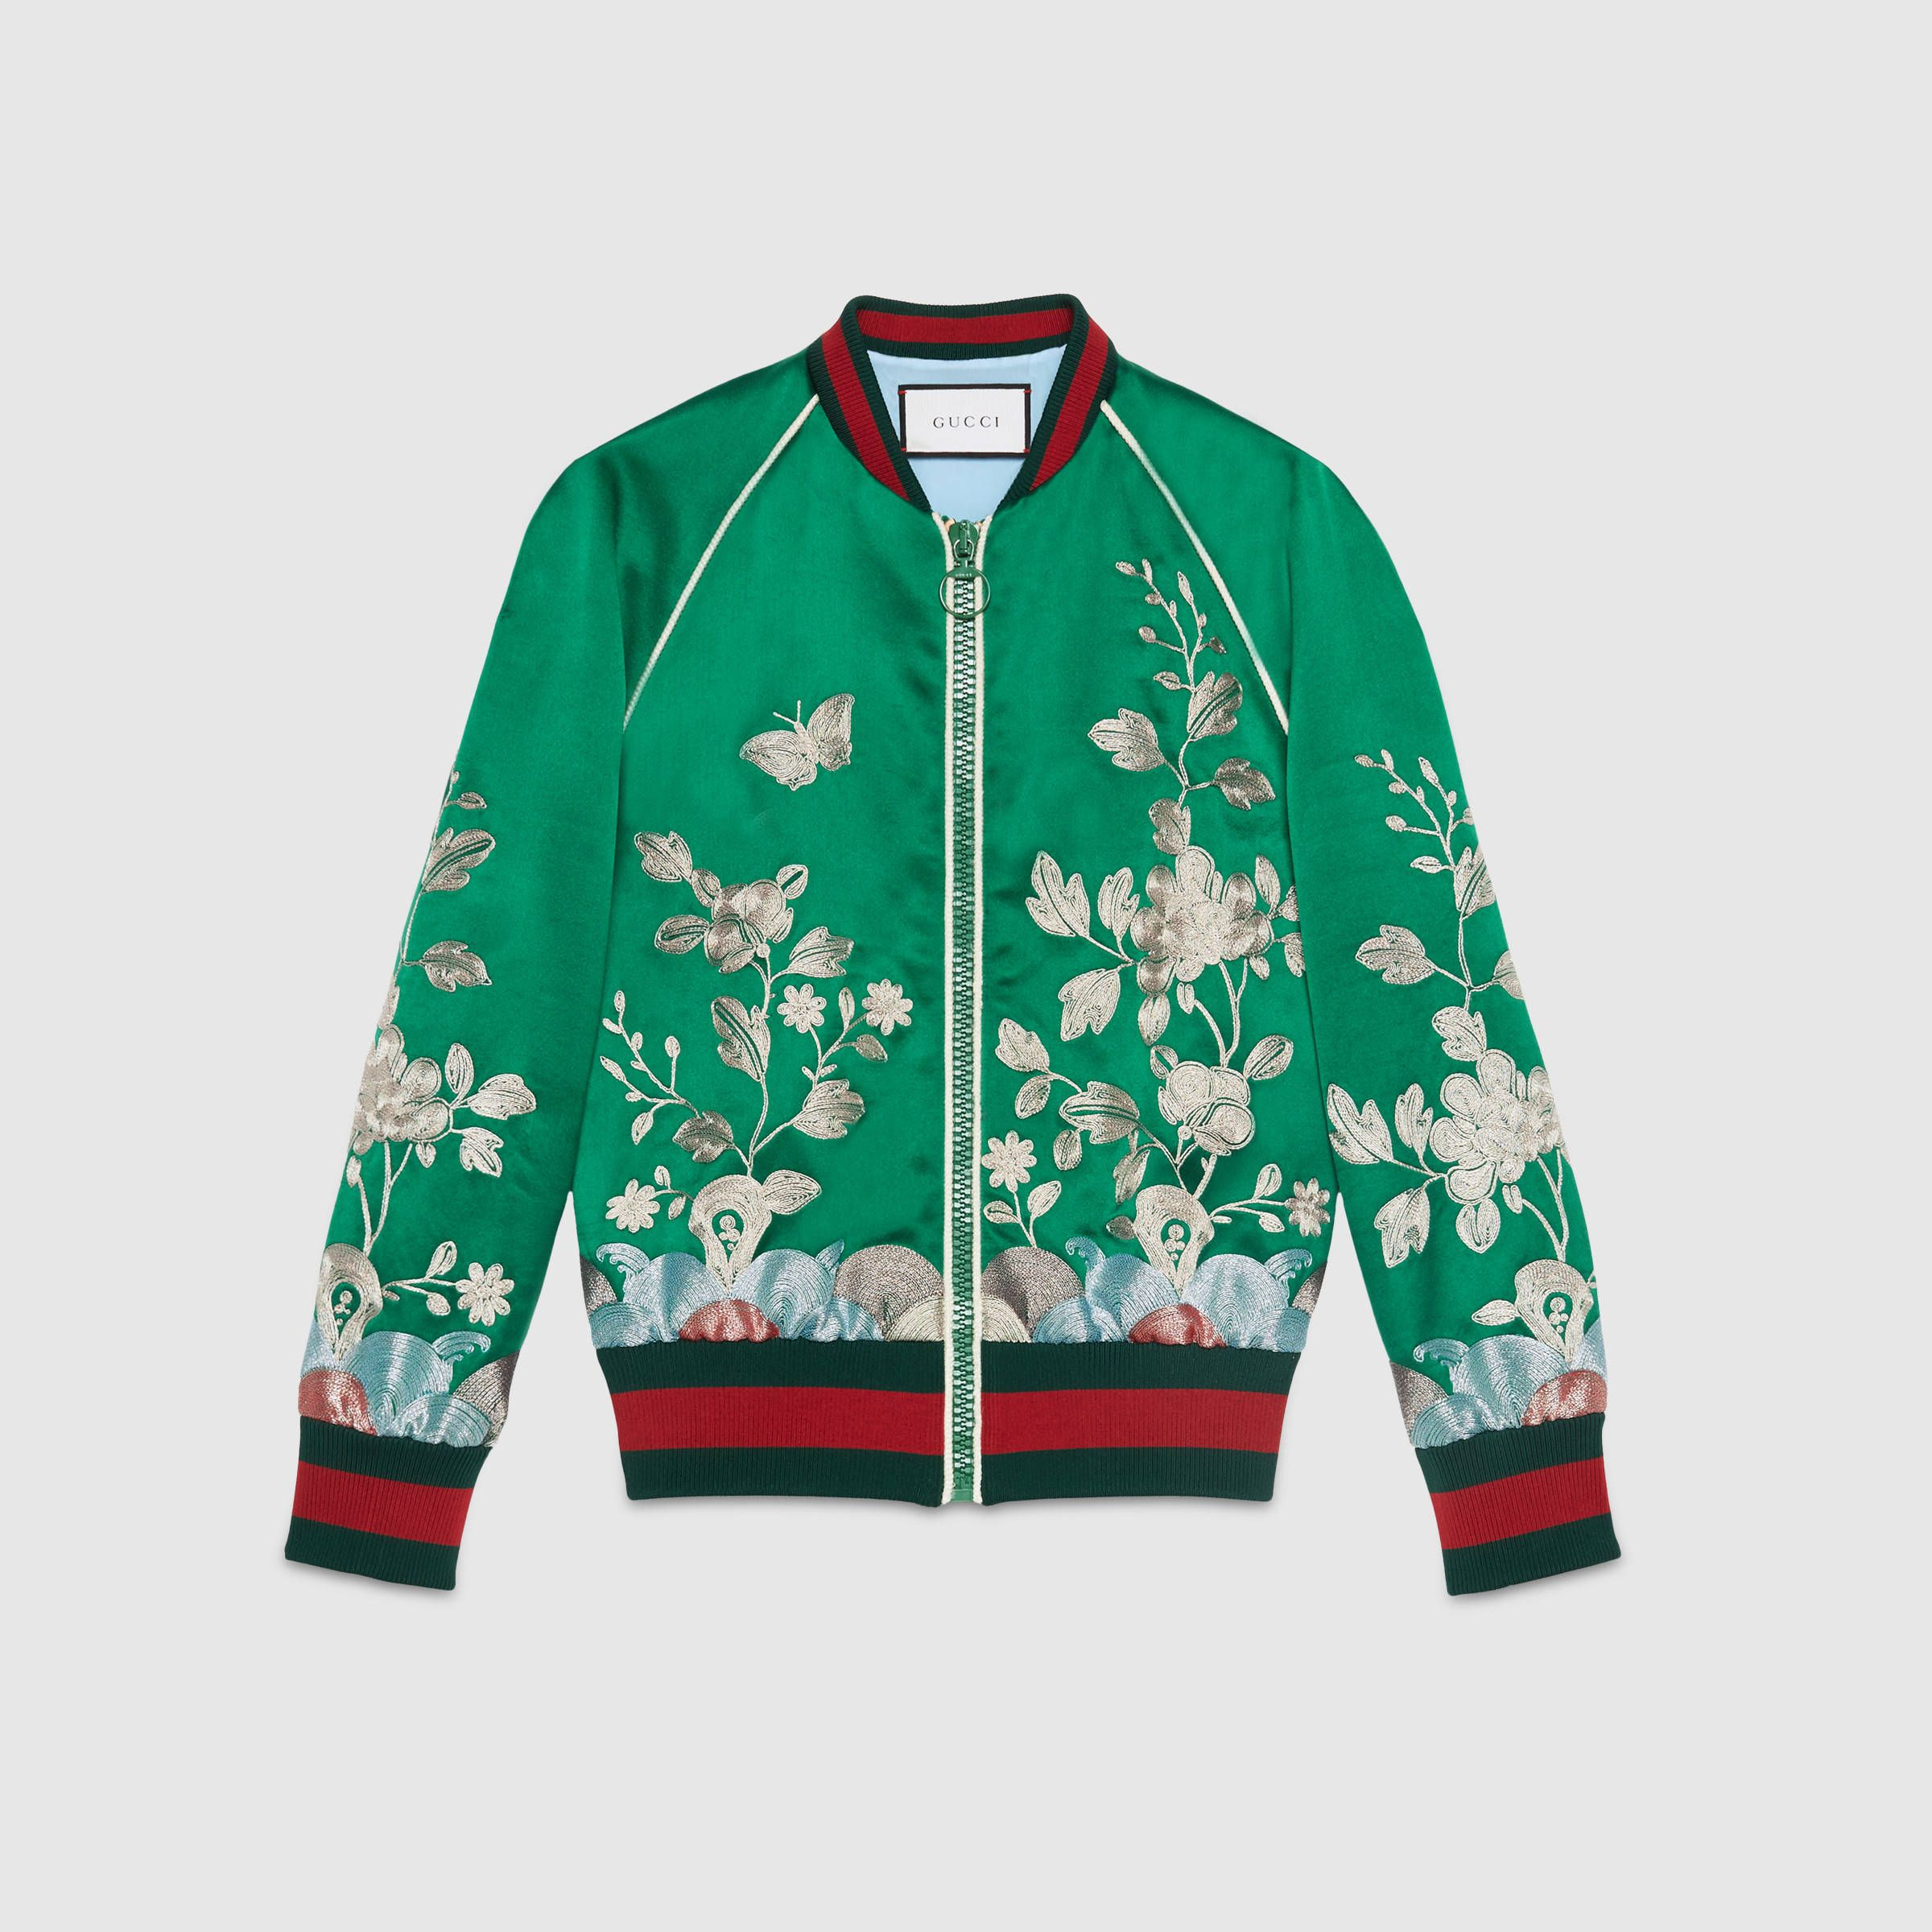 a24dda87a0c7 Gucci. Women Satin Bomber Jacket